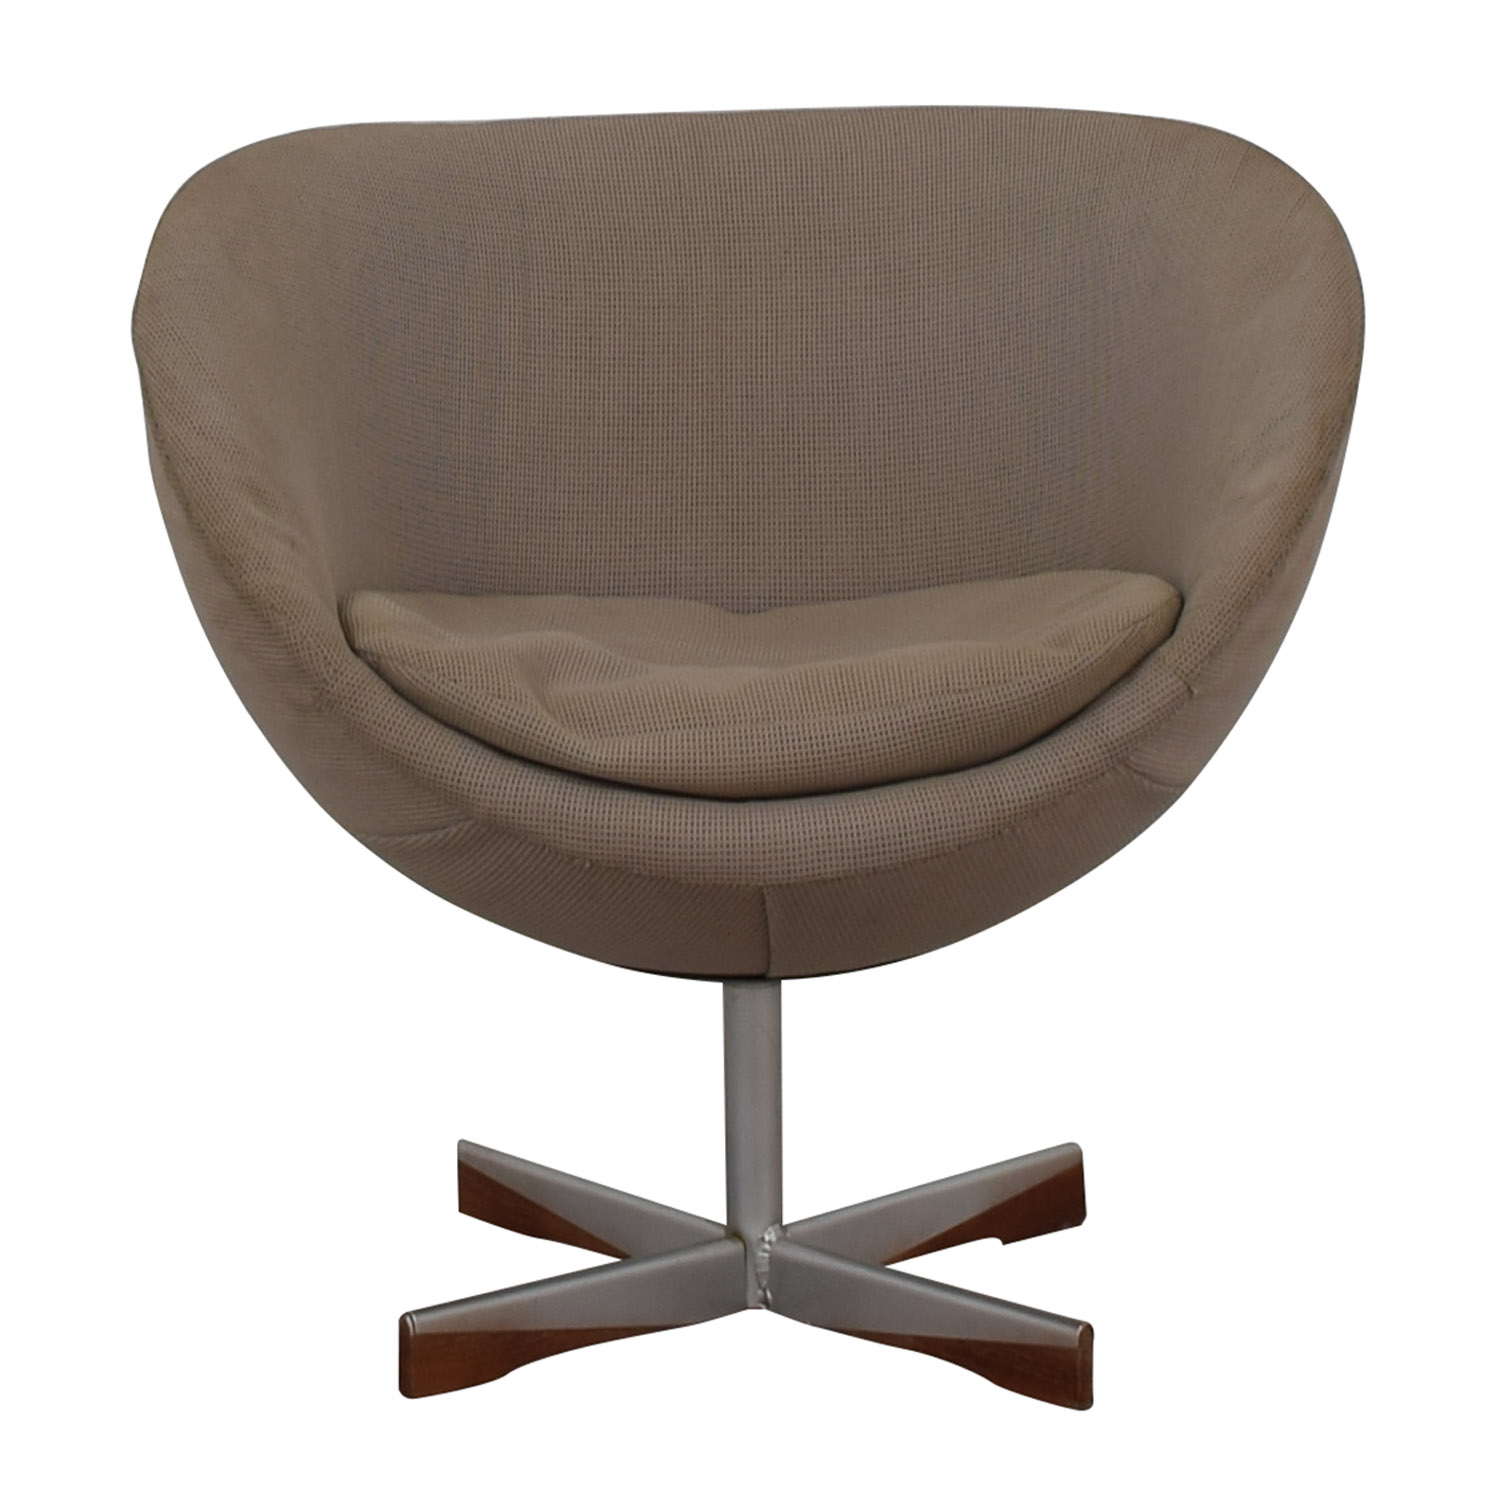 Super 90 Off Mid Century Beige Bowl Accent Chair Chairs Ibusinesslaw Wood Chair Design Ideas Ibusinesslaworg